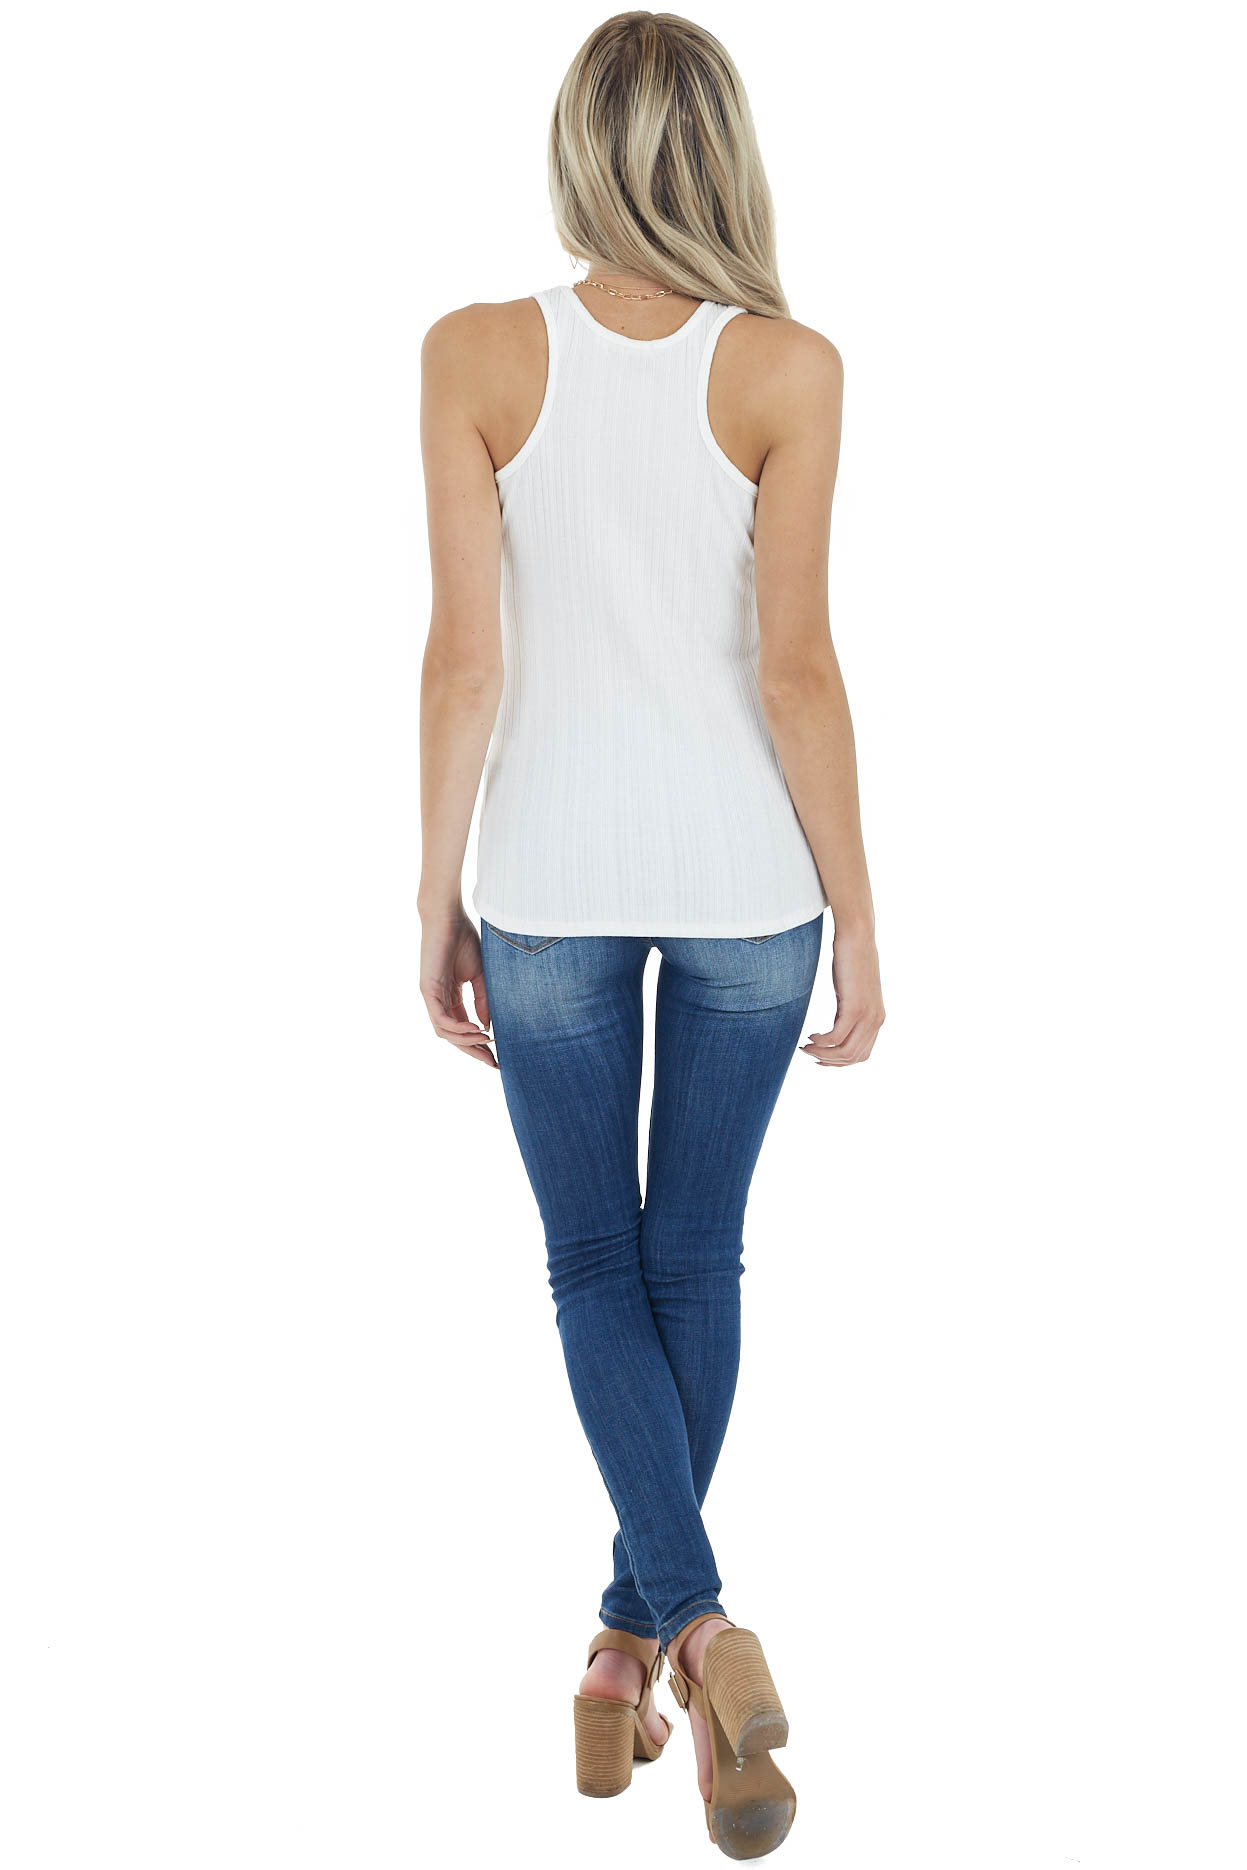 Cream Sleeveless Ribbed Knit Top with Round Neckline